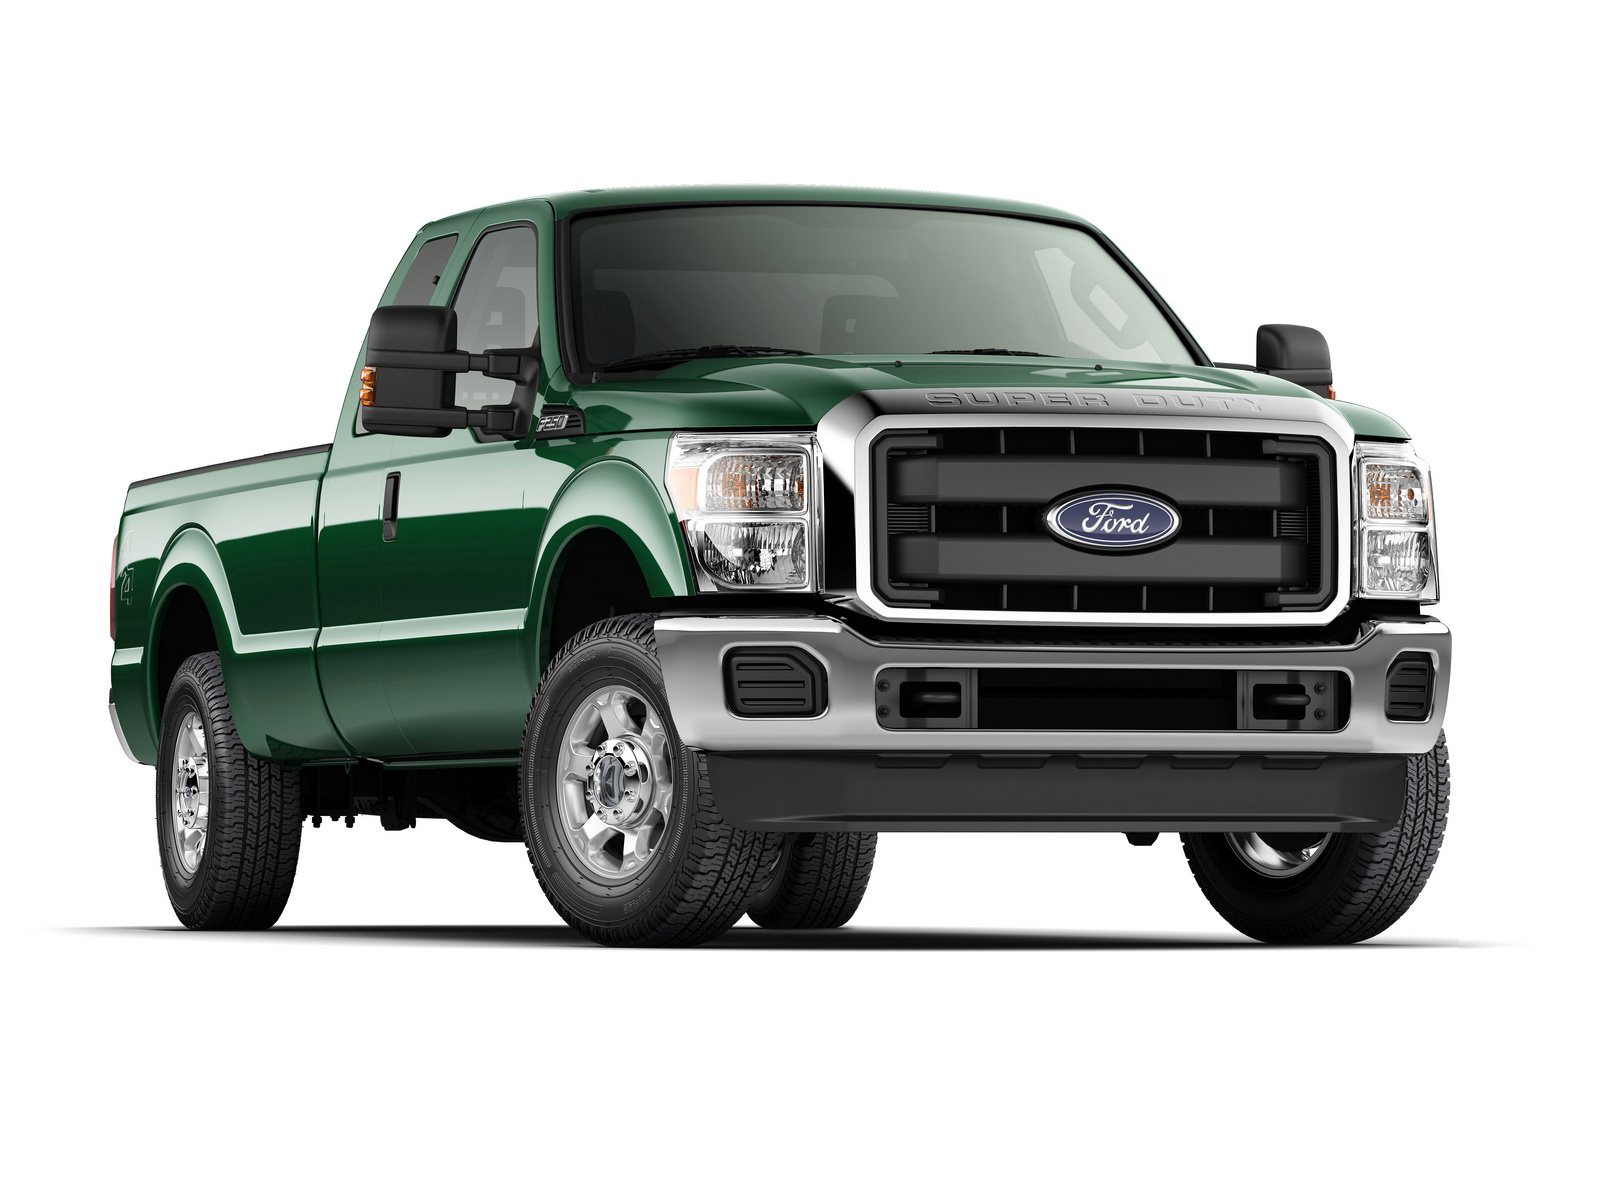 2014 ford f 250 super duty review cargurus. Black Bedroom Furniture Sets. Home Design Ideas